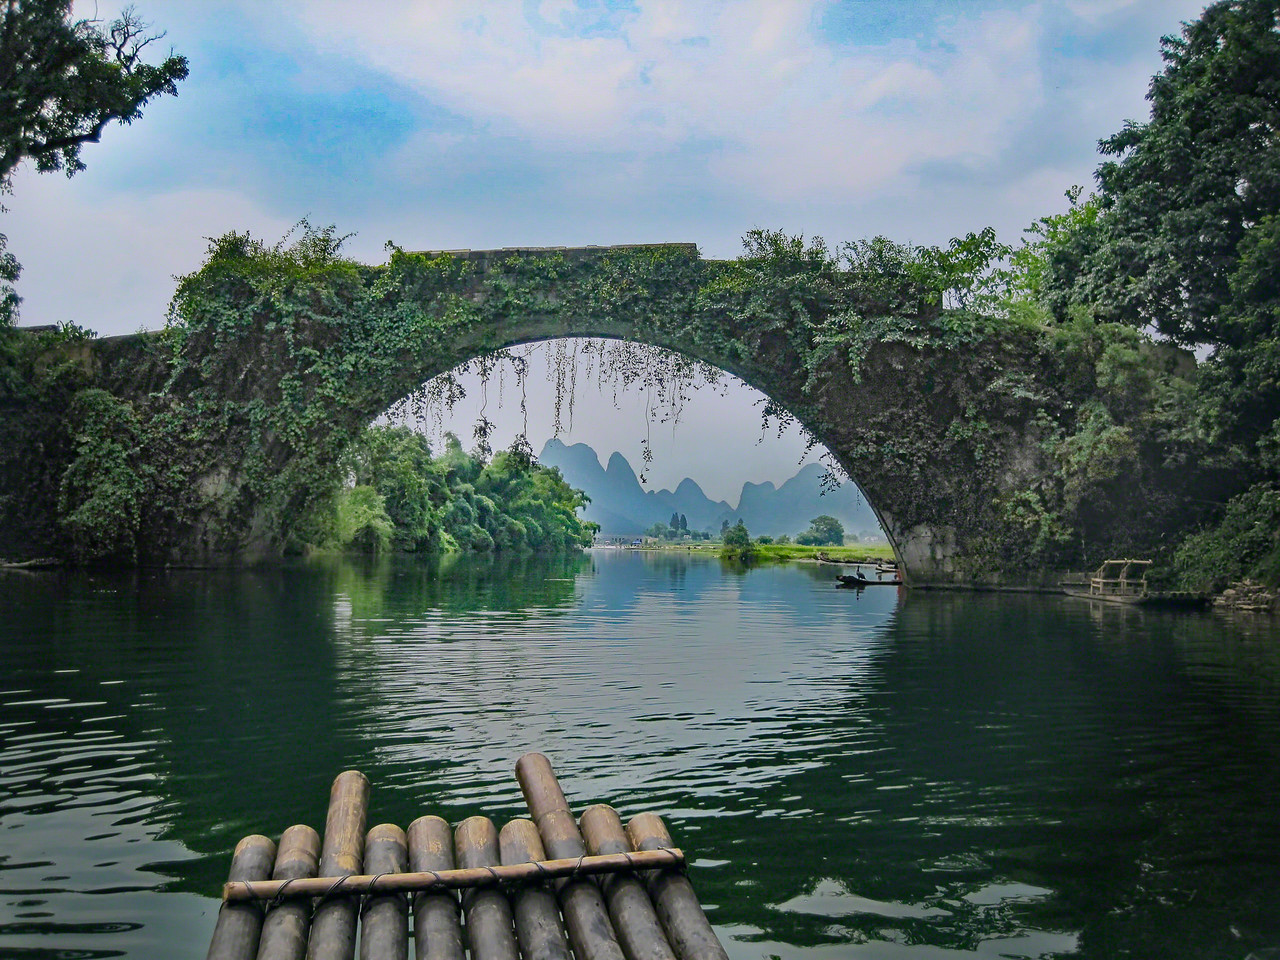 Yulong Bridge on the Li River in Yangshuo China with Intentionally Lost and Kevin Wenning #intentionallylost